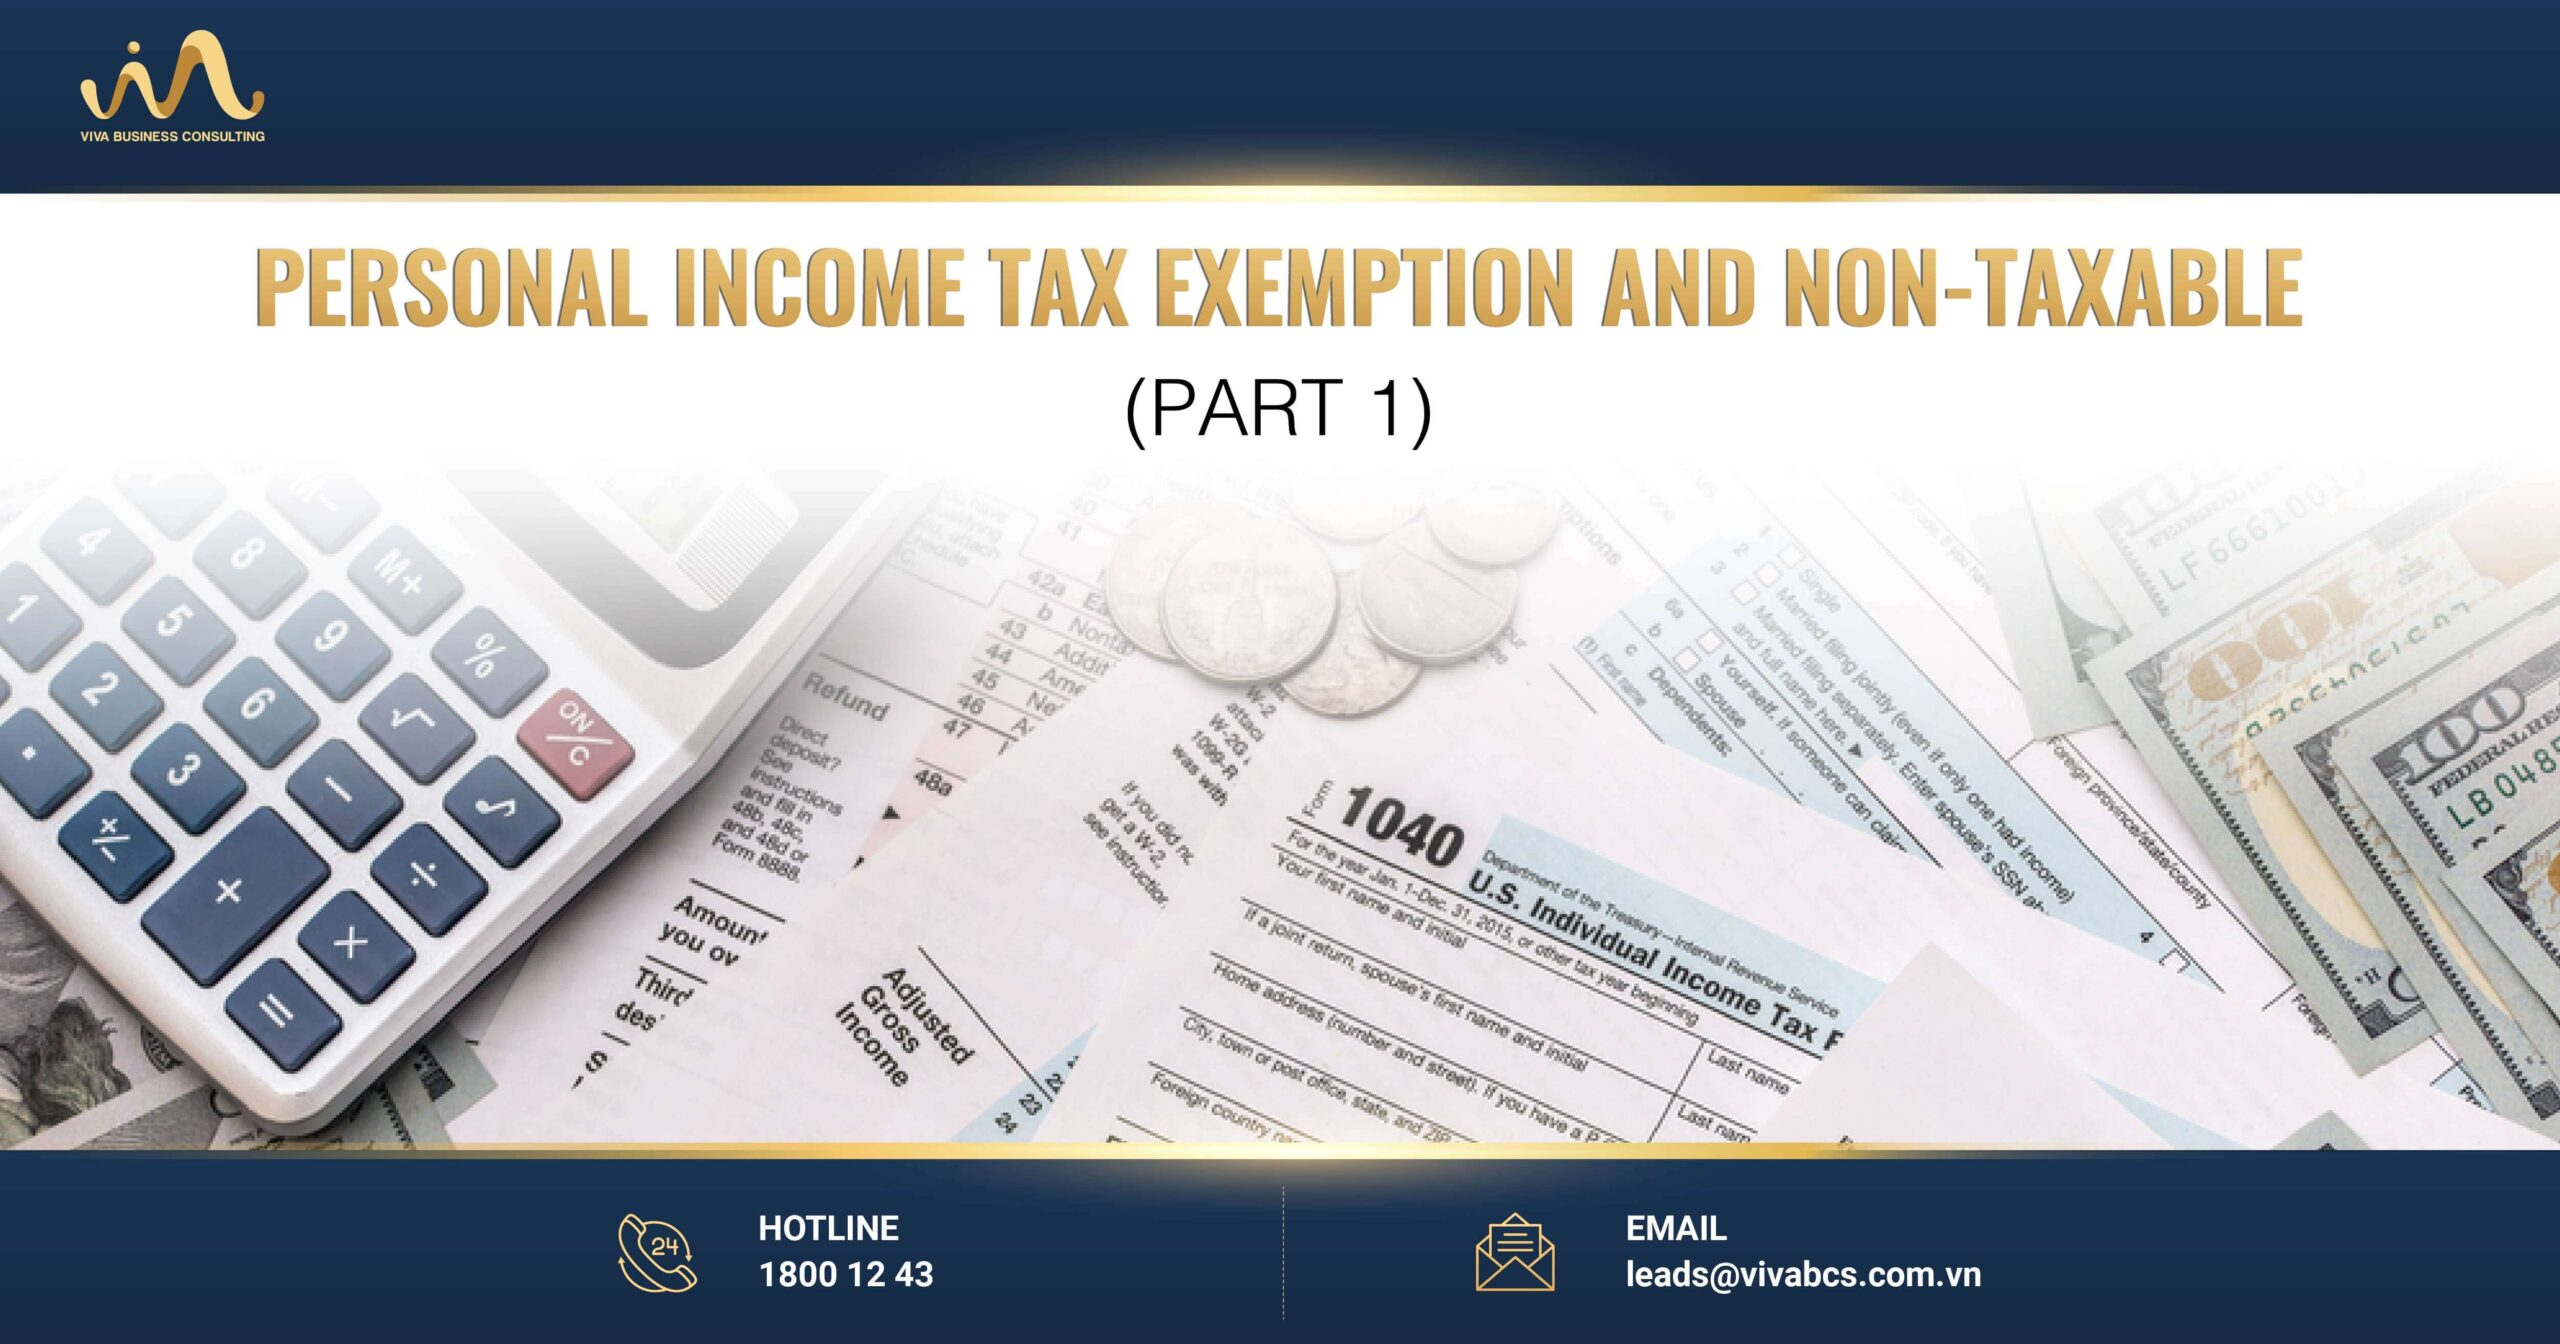 Non-taxable income